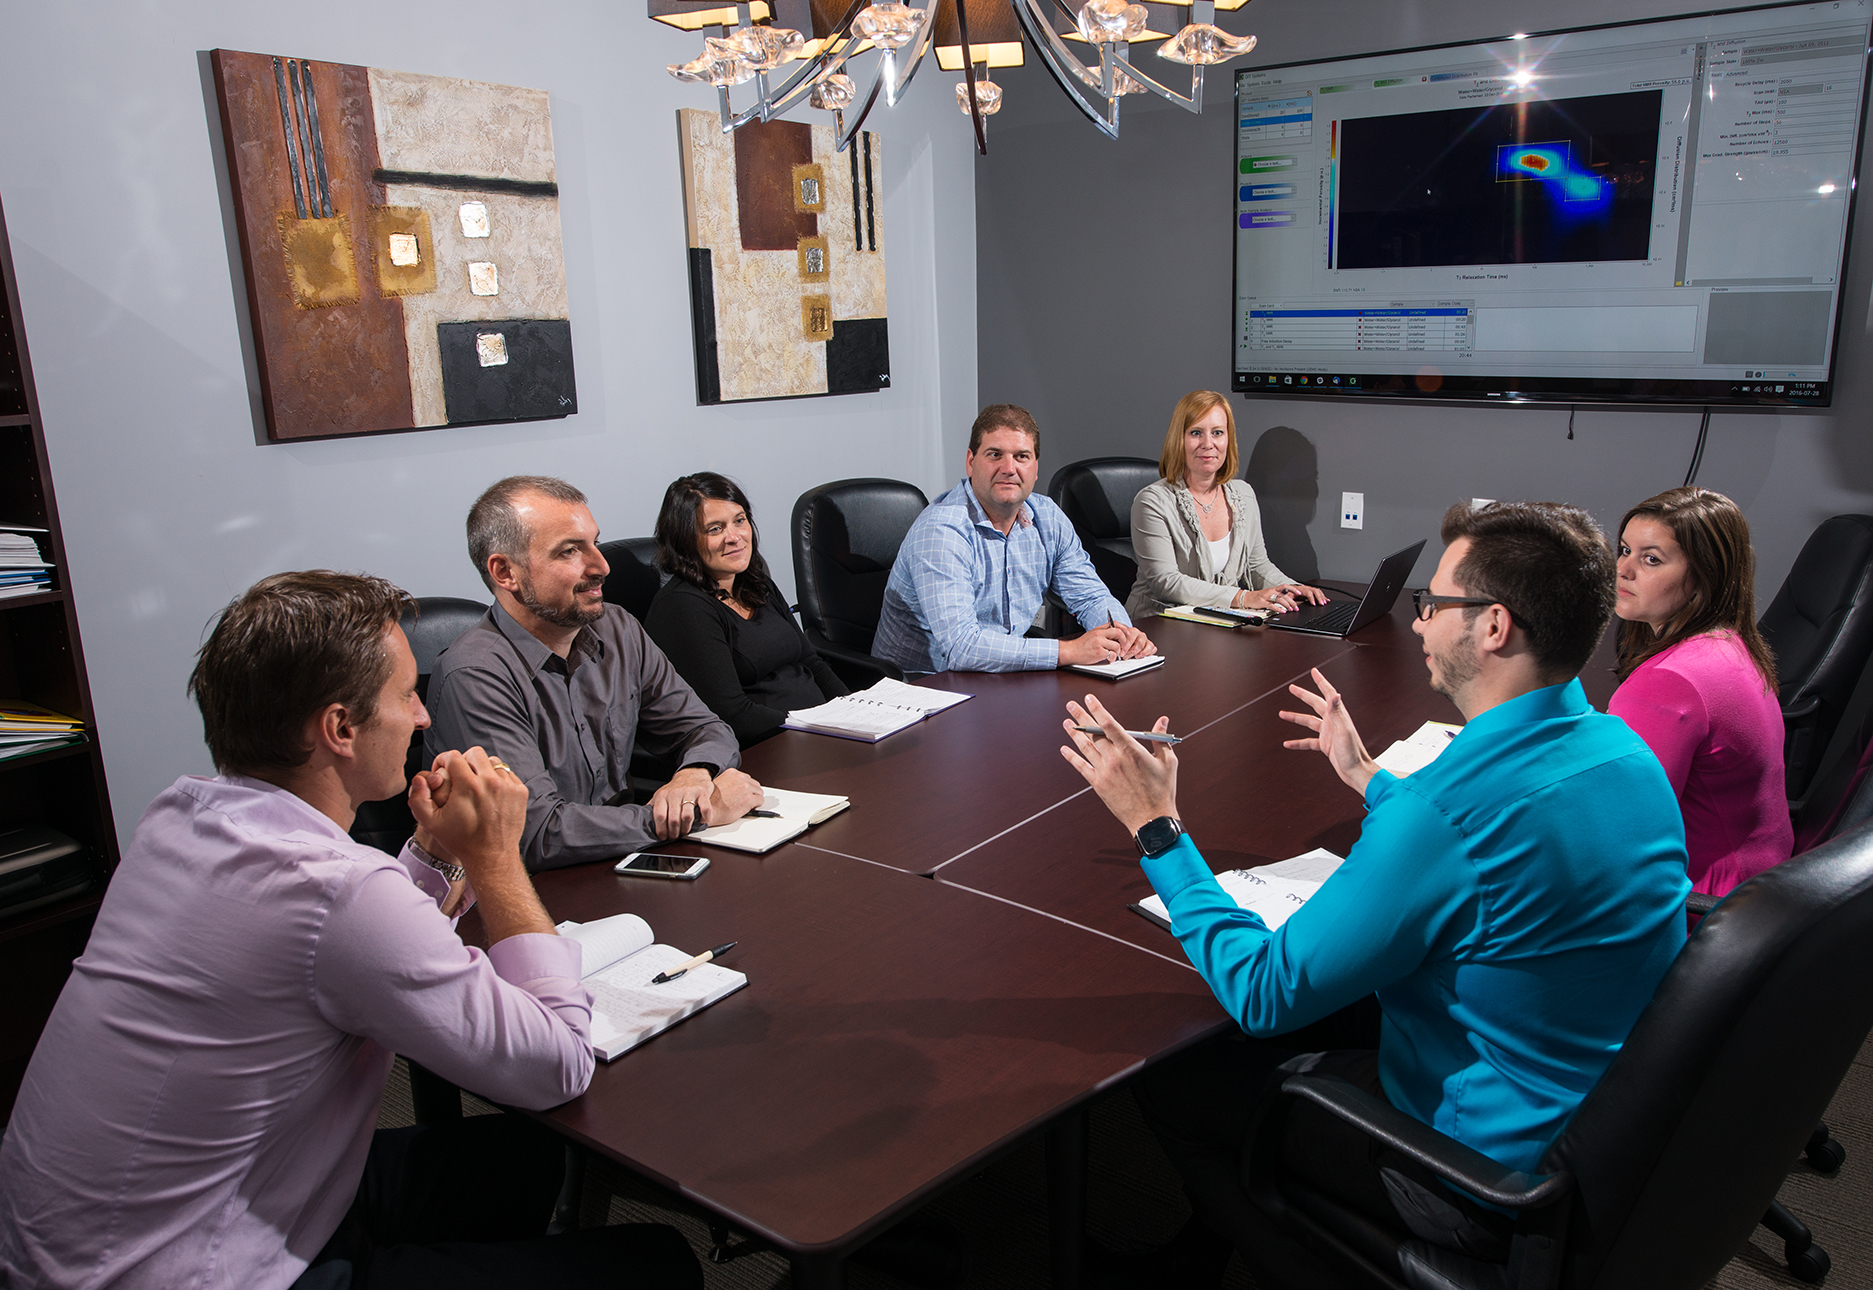 GIT's team of NMR leaders discussing a special core analysis project at the boardroom table